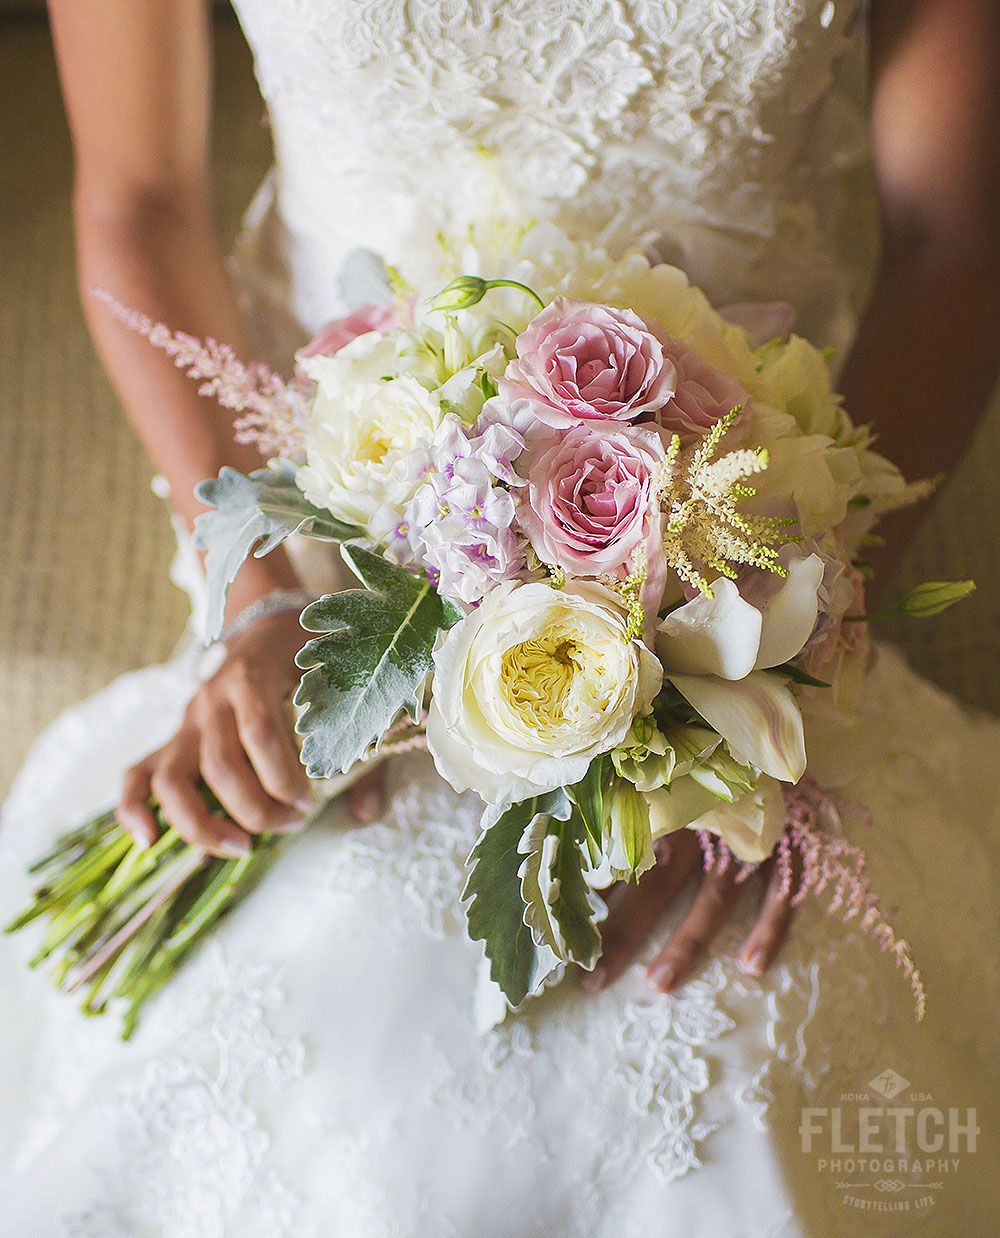 Bouquet By Heidi Flowers By Heidi At Four Seasons Hualalai Photo By Fletch Photography Www Fletchphotography Wedding Bouquets Wedding Flowers Bridal Bouquet